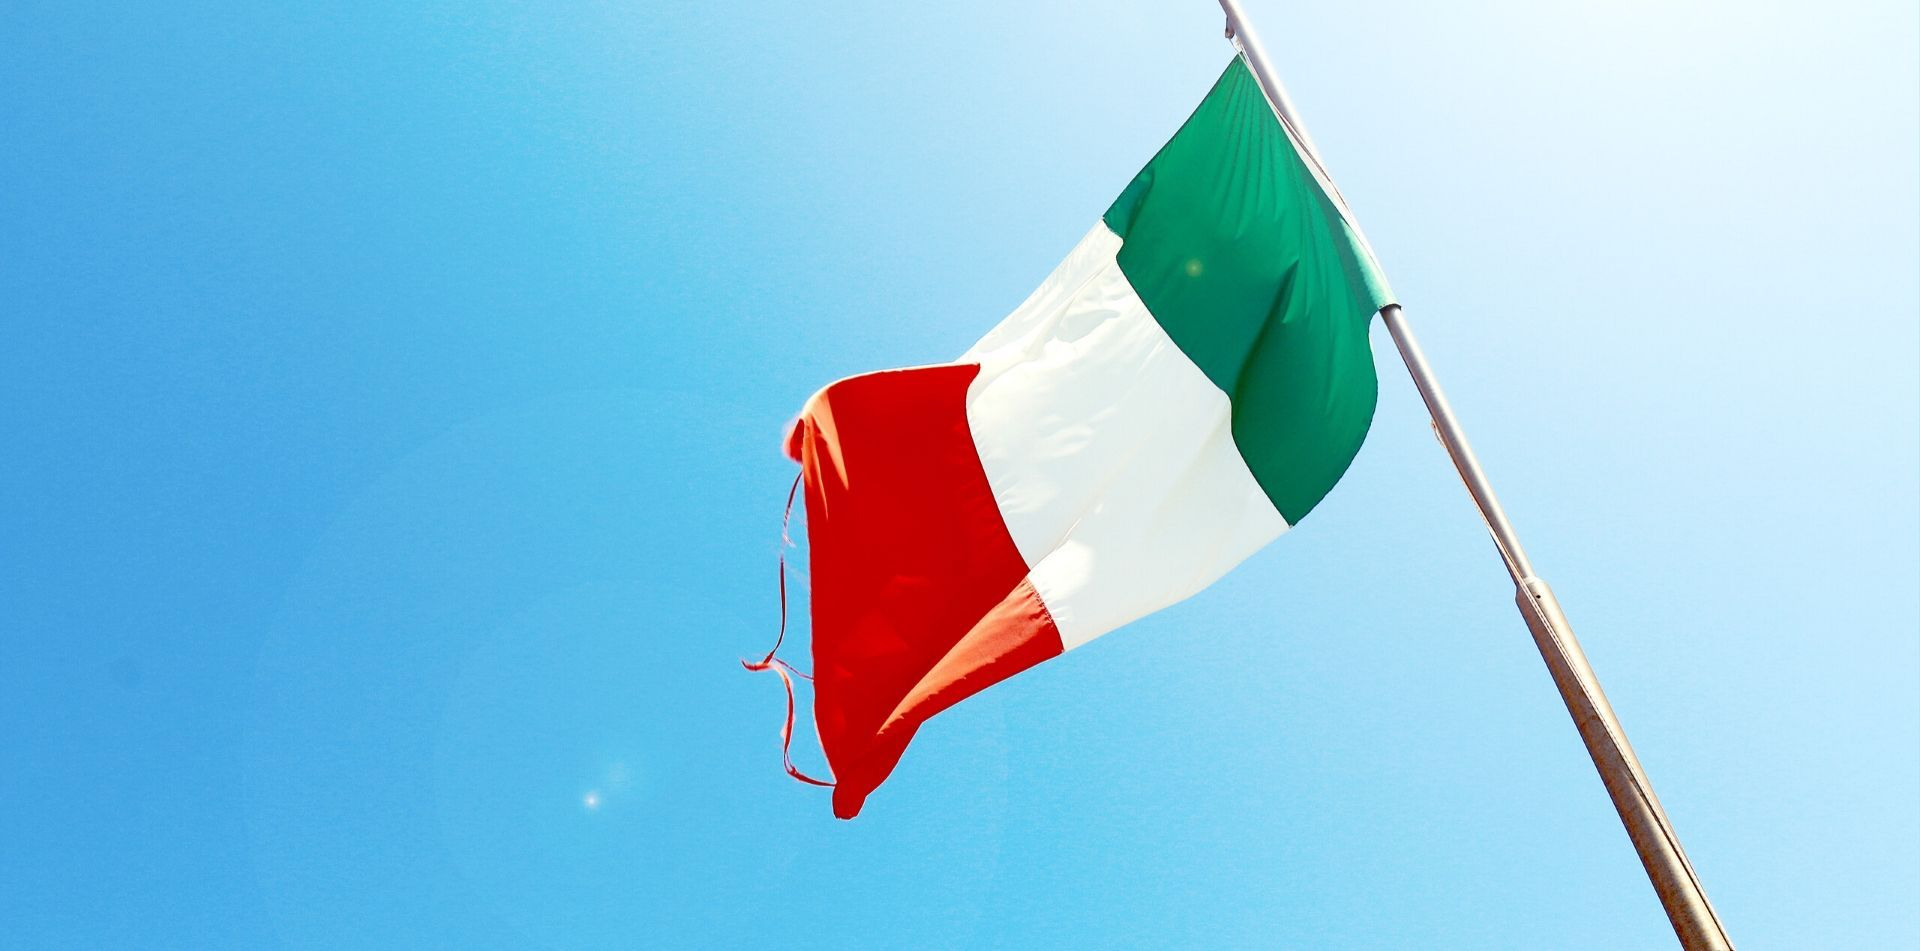 Europe Italy Italian Flag beautiful colors flowing in the wind blue sky white, red & green - luxury vacation destinations